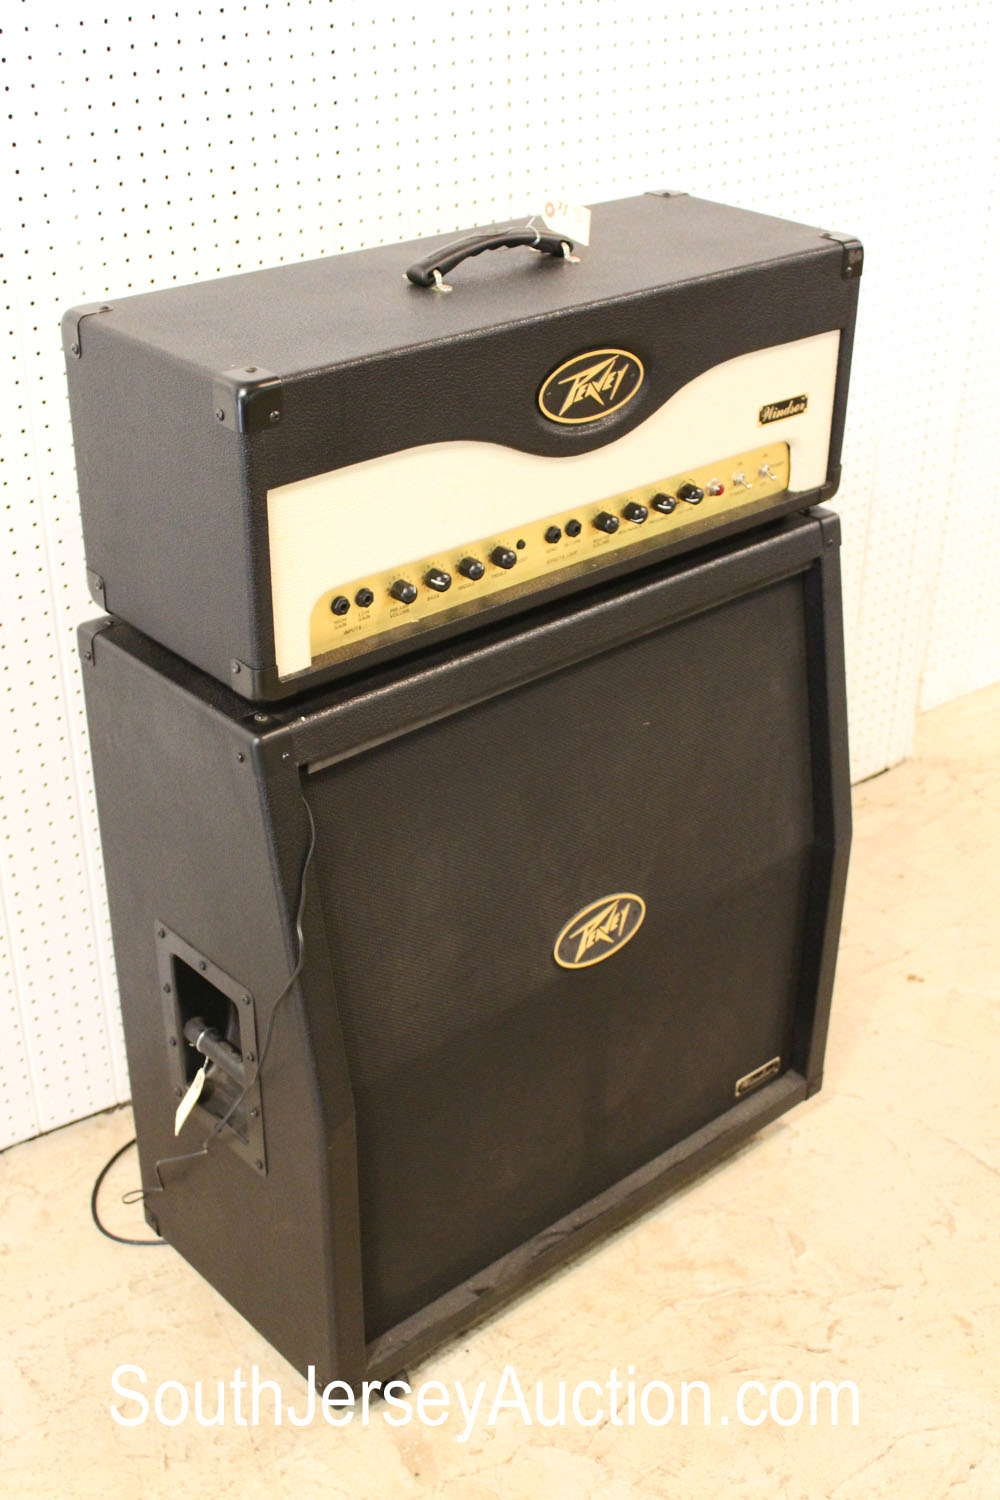 Pevey Windsor Half Stack Tube Amp circa 1980's, good condition, working, (this is a 2 piece lot with matching cabinet and head)  measuring soon